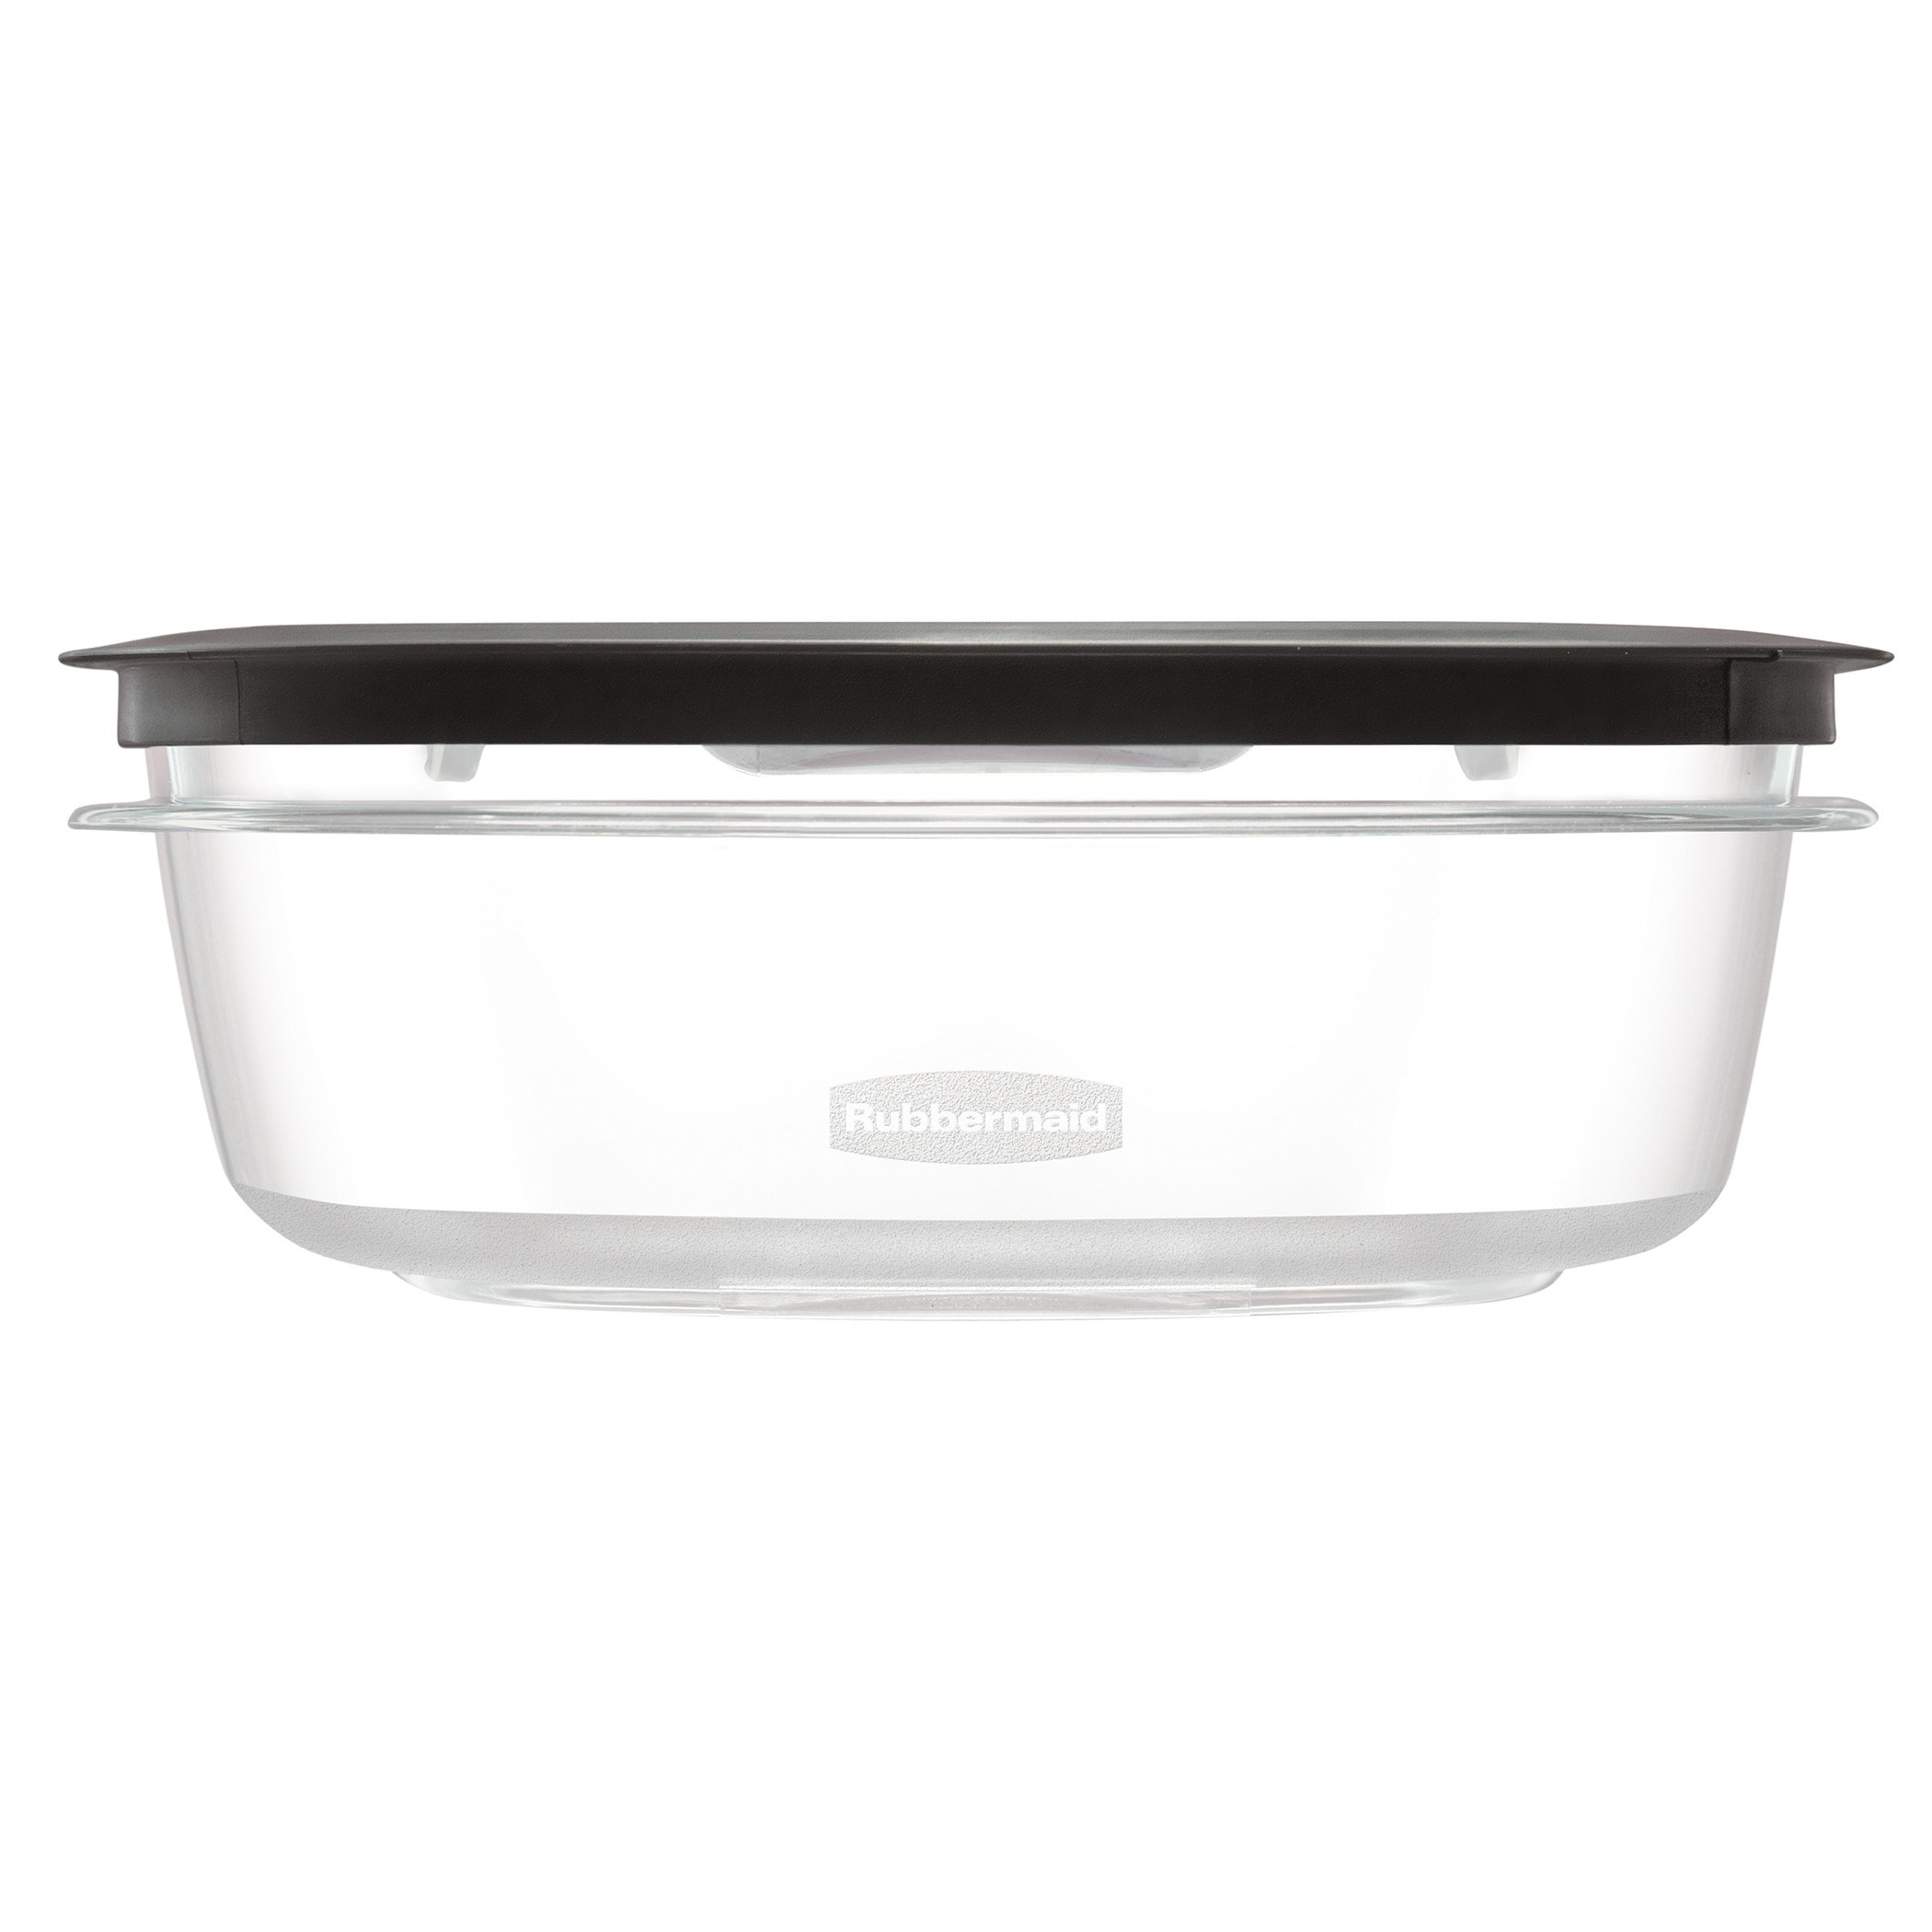 Rubbermaid 1937692 9 Cup Premier Food Storage Container (...